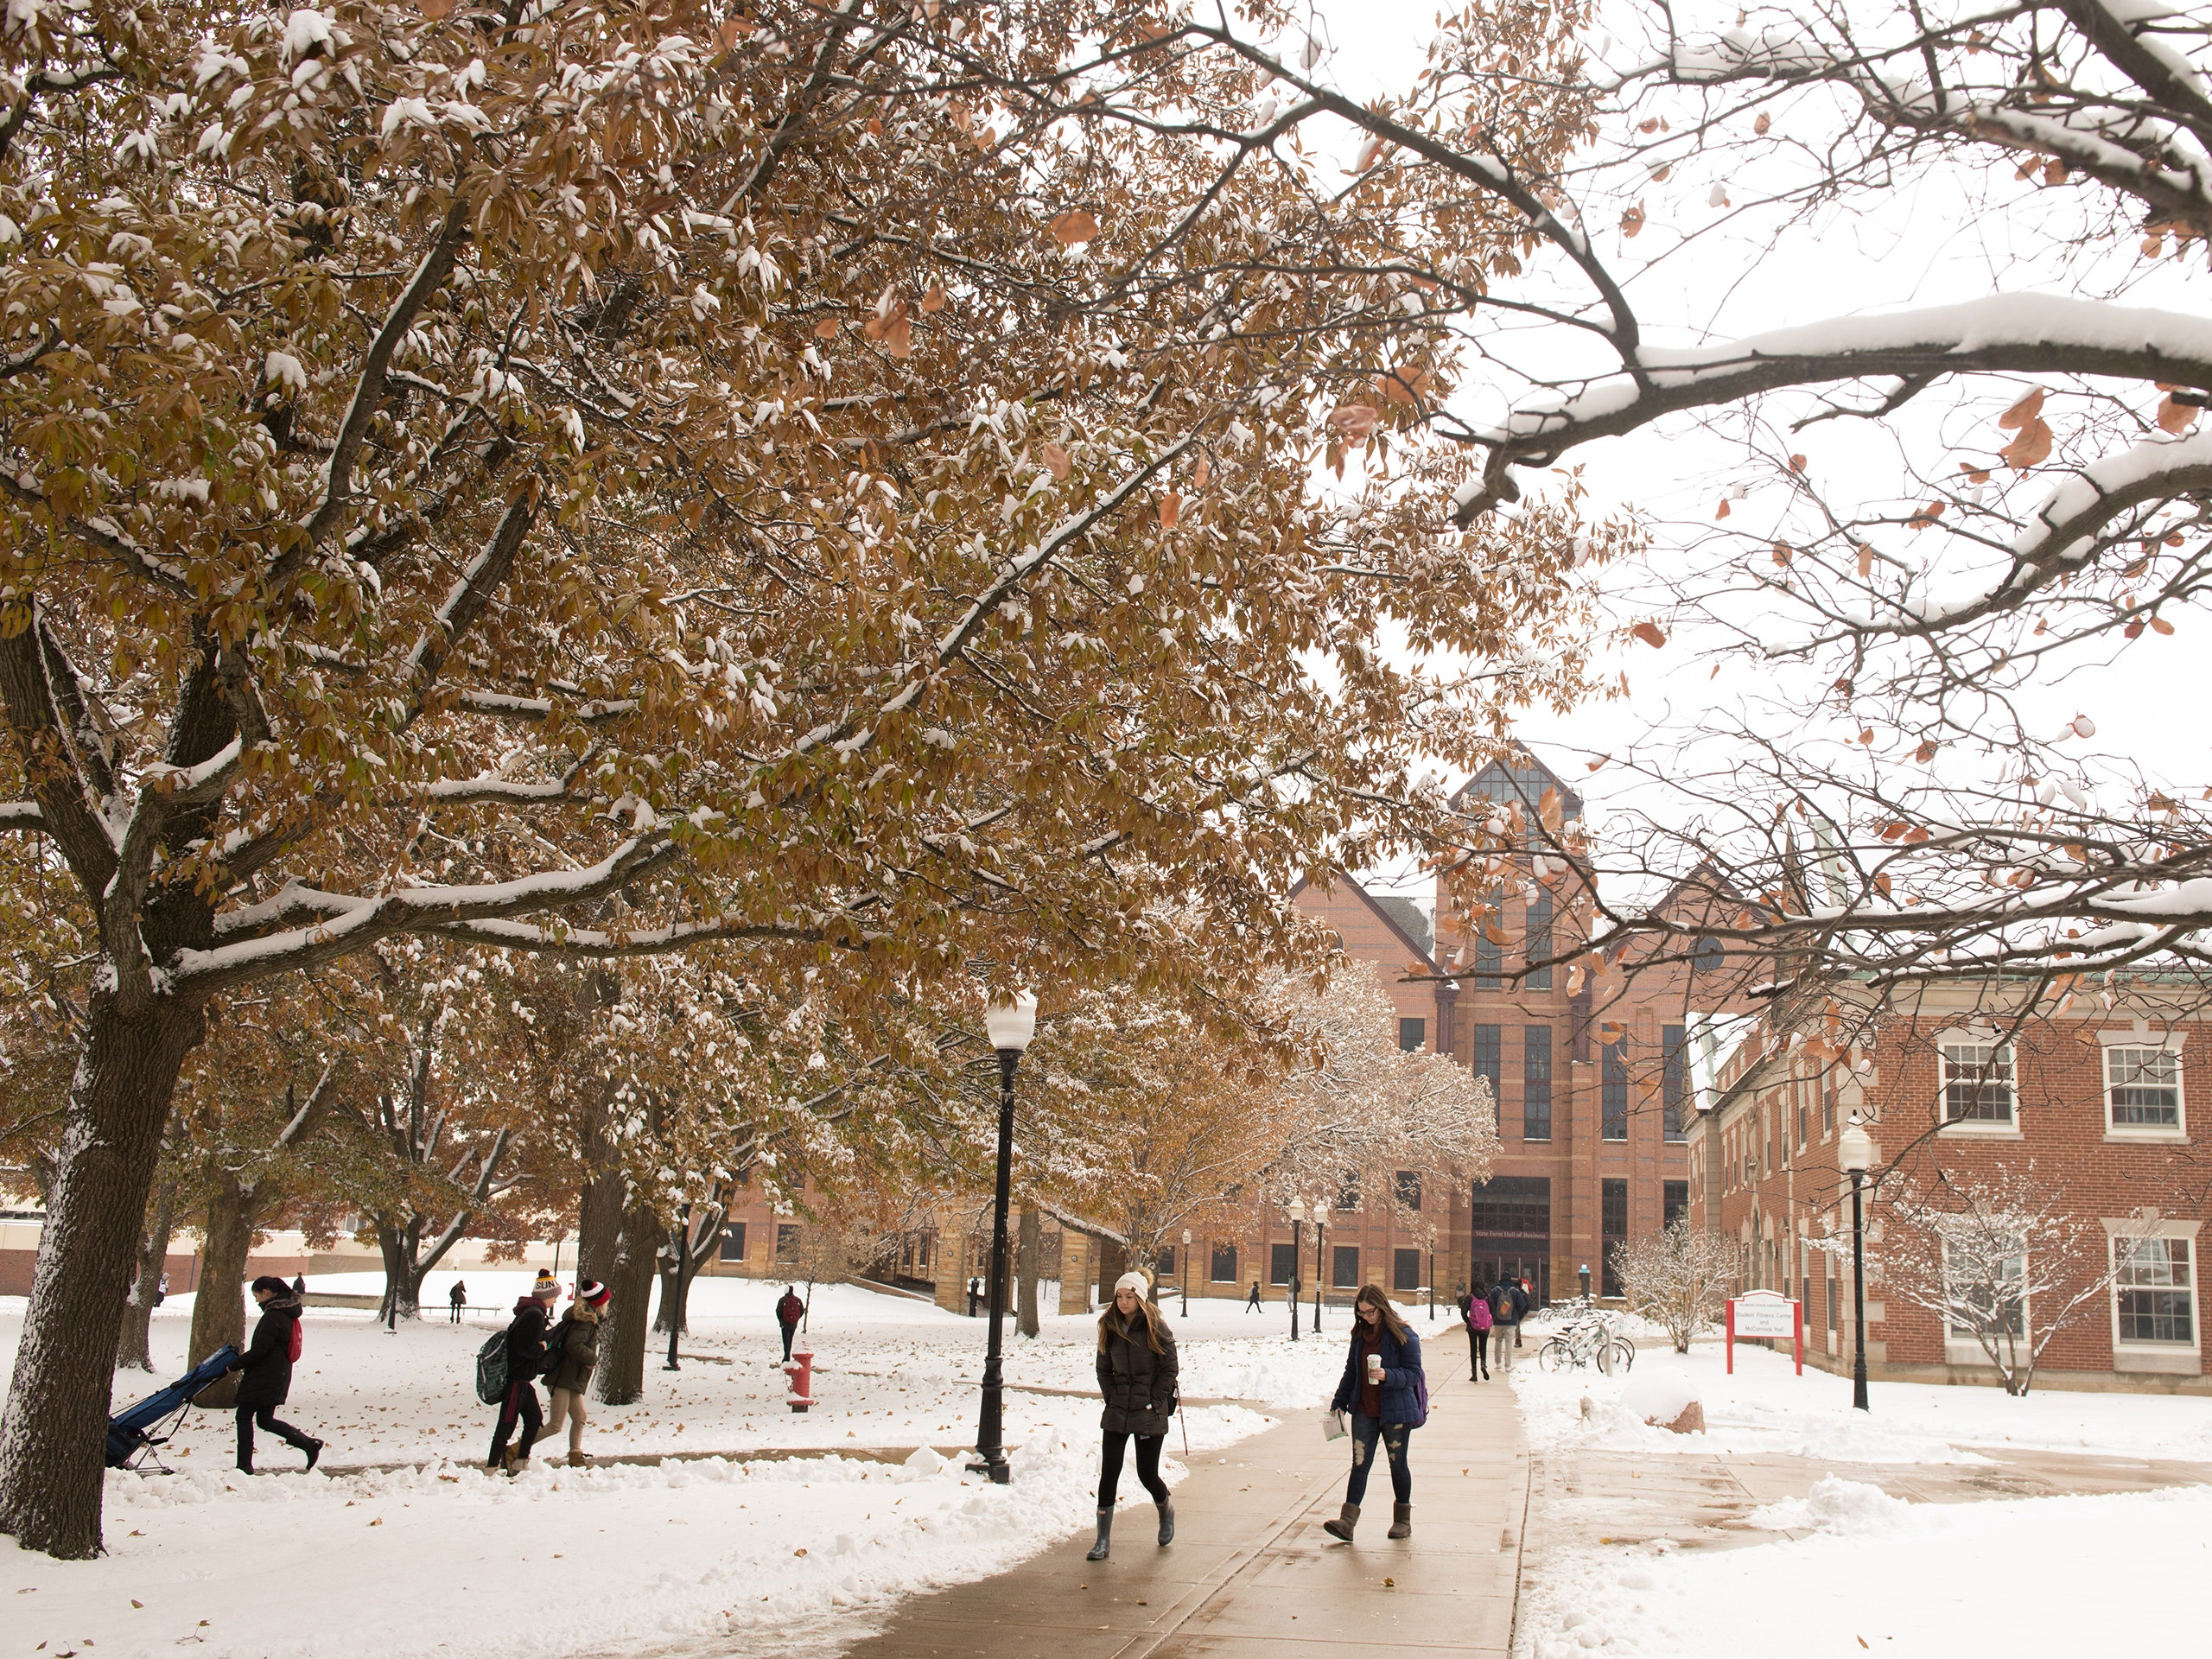 Students walking to and from class on the quad during the winter, with snow on the ground.